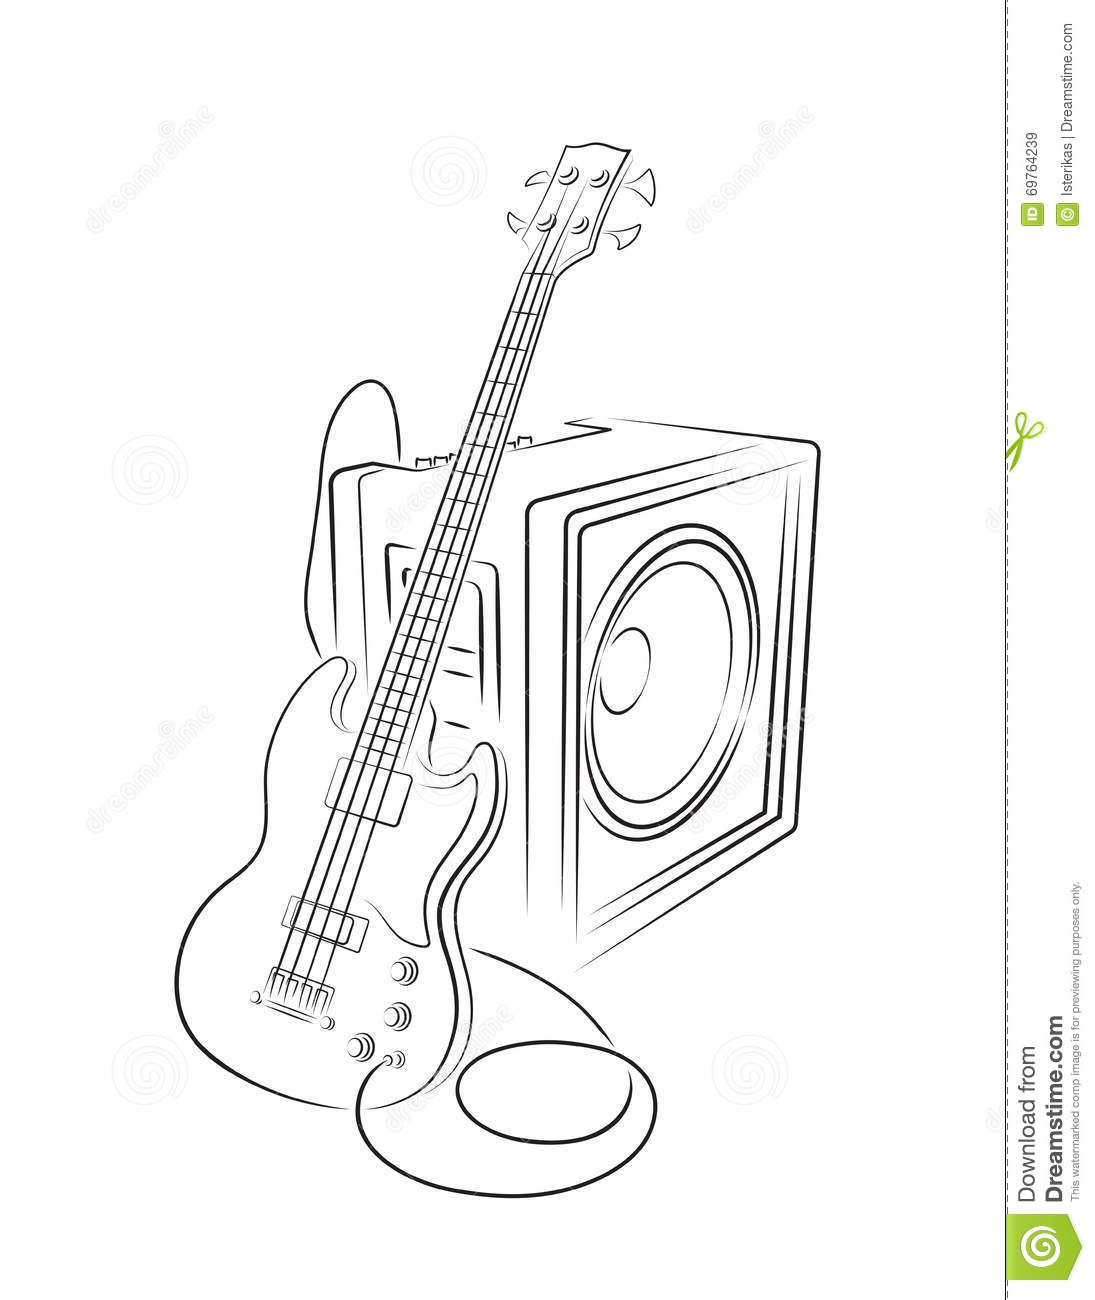 electric bass guitar line art vector illustration cartoon